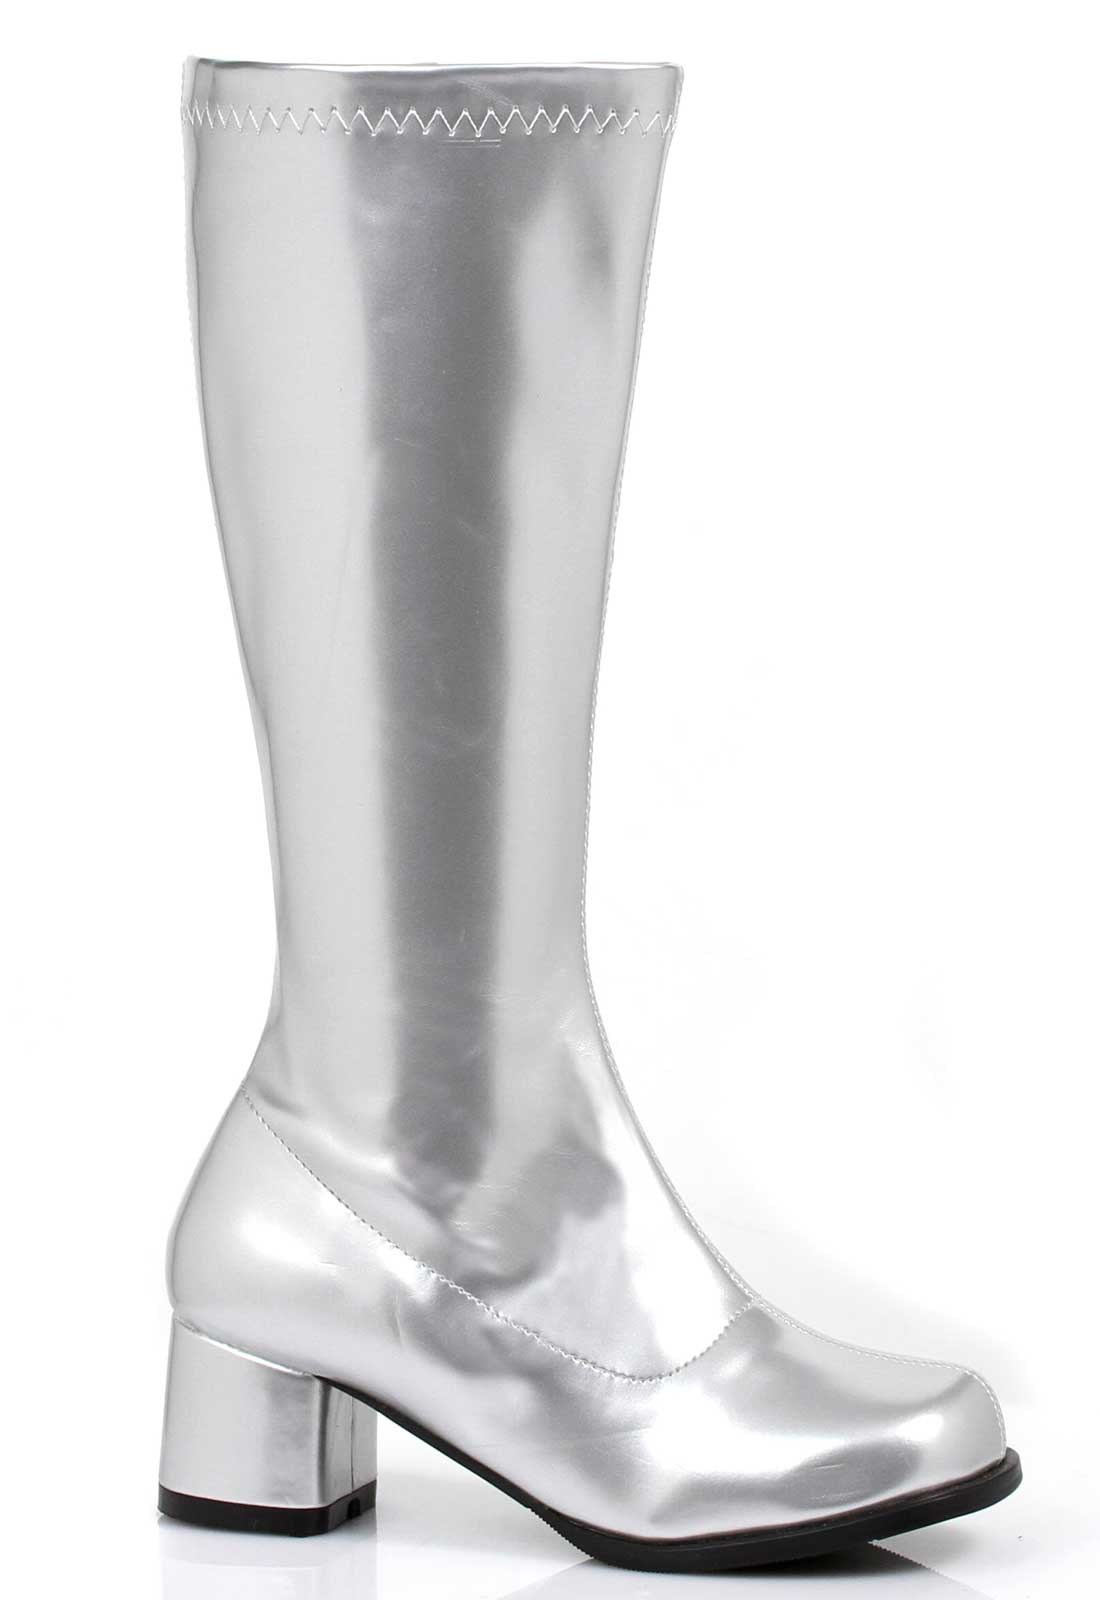 Image of Gogo Boots (Silver) Child Small (11/12)